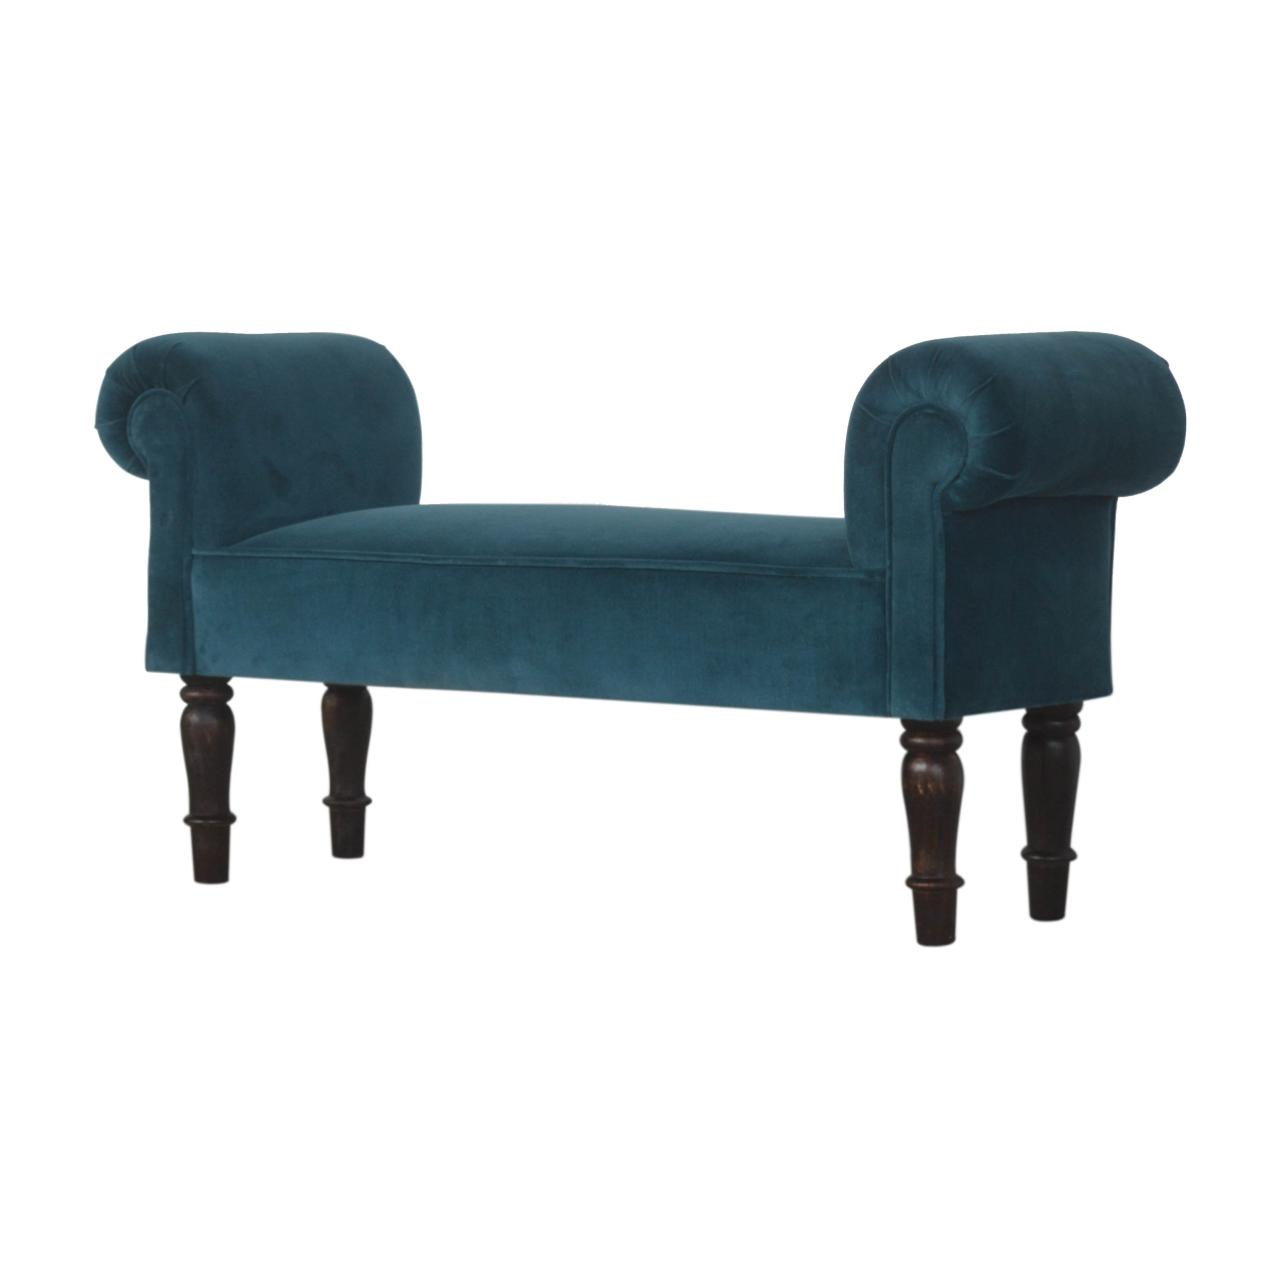 Teal Velvet bench with Turned Feet